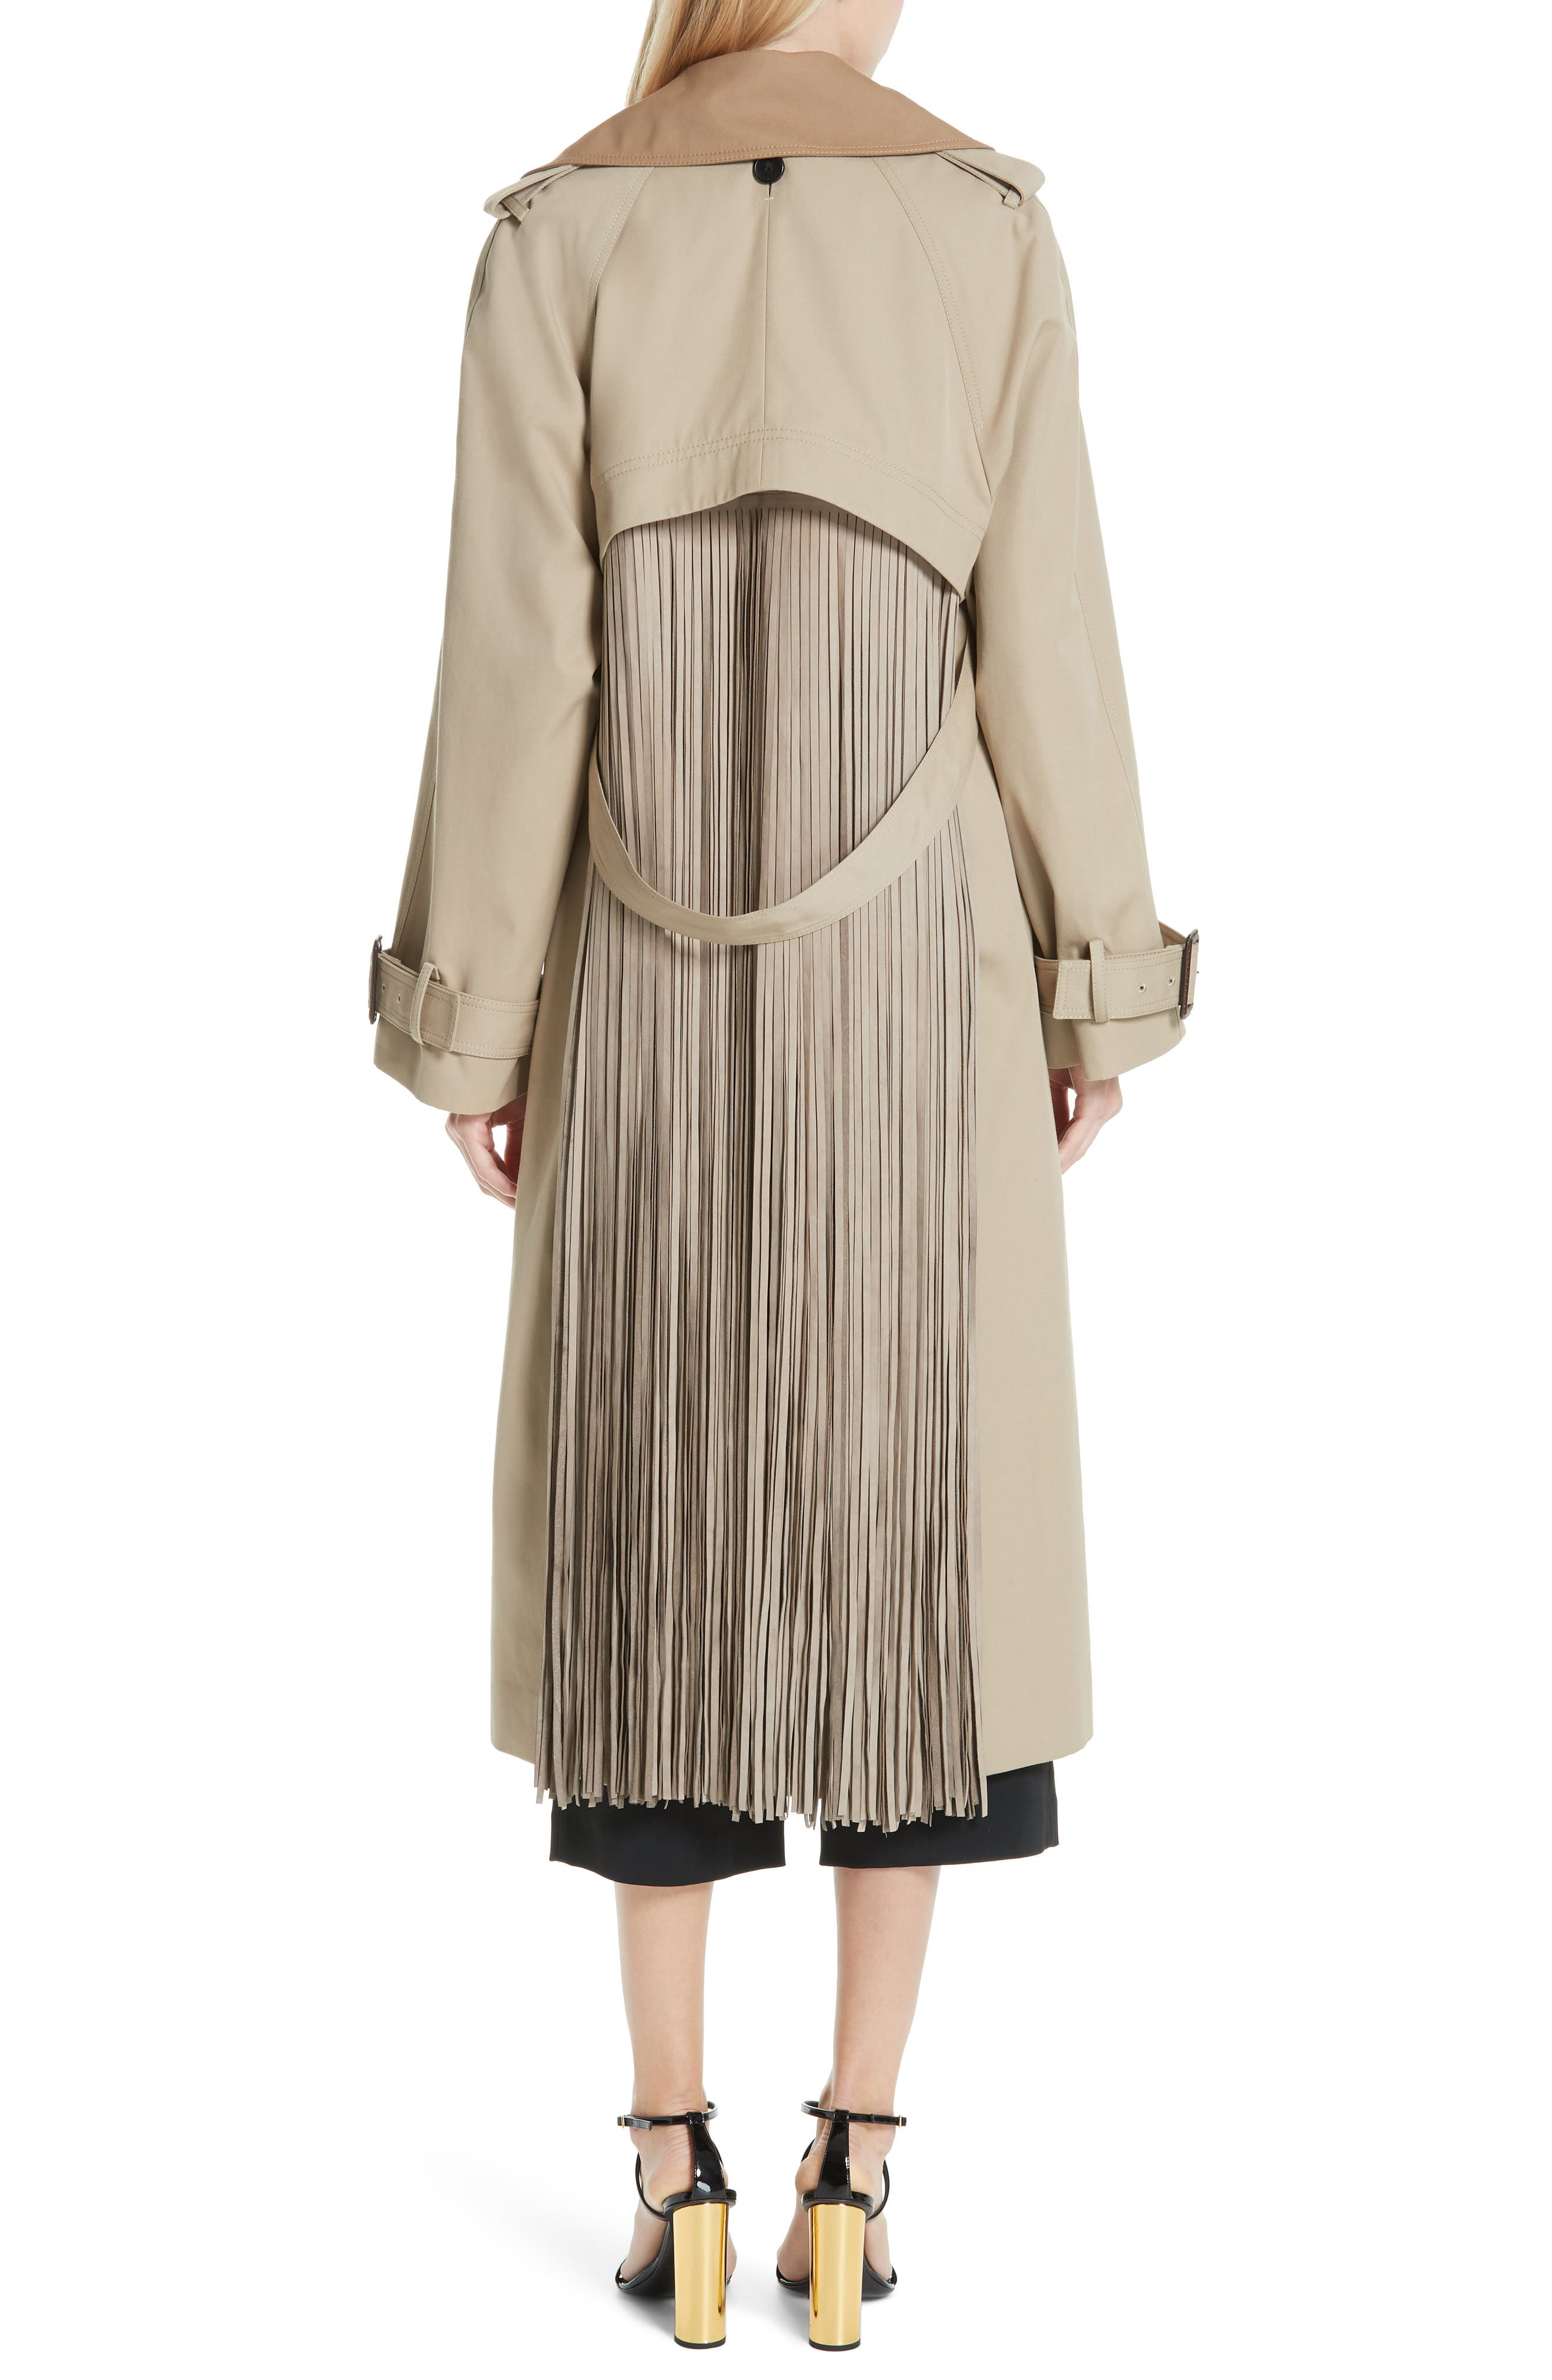 Trench Coat with Vest & Removable Fringe,                             Alternate thumbnail 5, color,                             KHAKI/ TAN